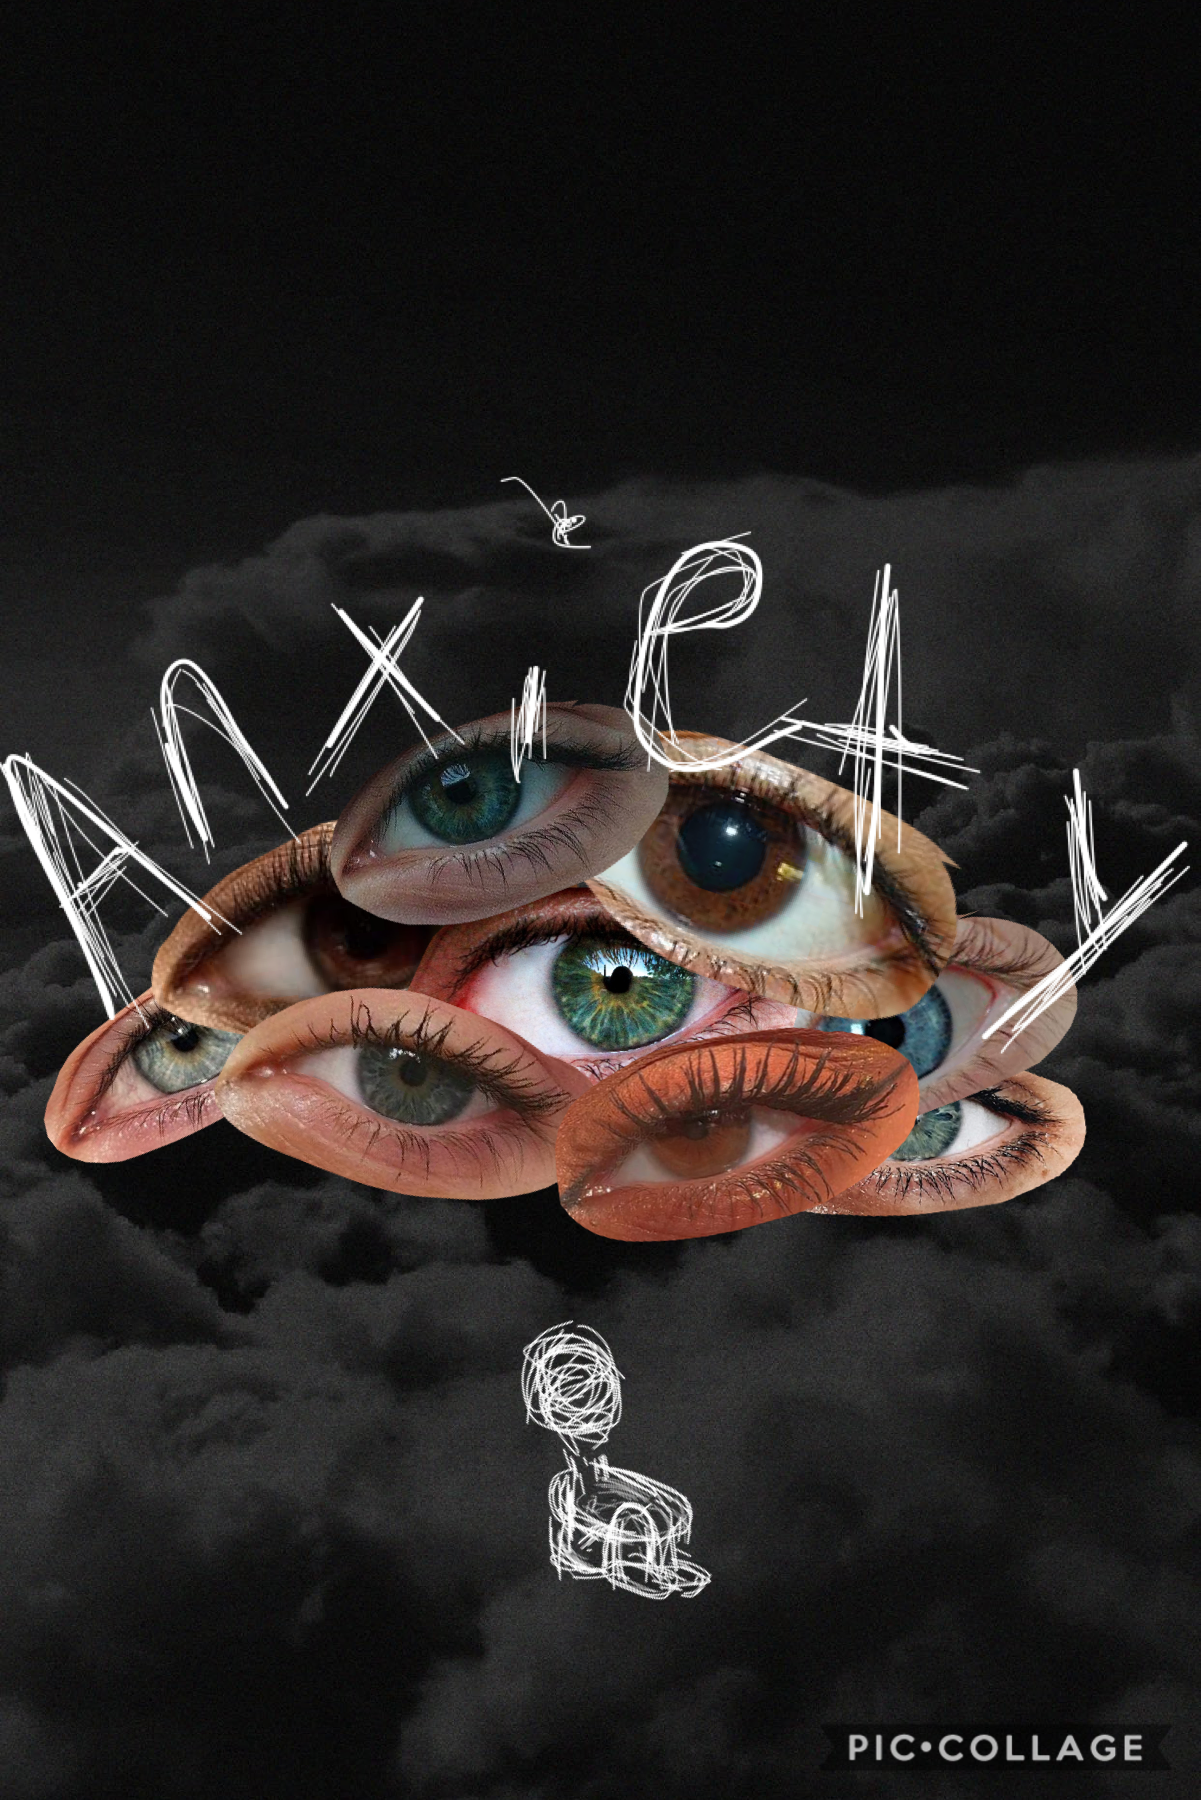 ~1/28/2021~ tap✨ This collage is about how it can feel like everyone is watching u when u have anxiety. I hope you enjoy the collage!